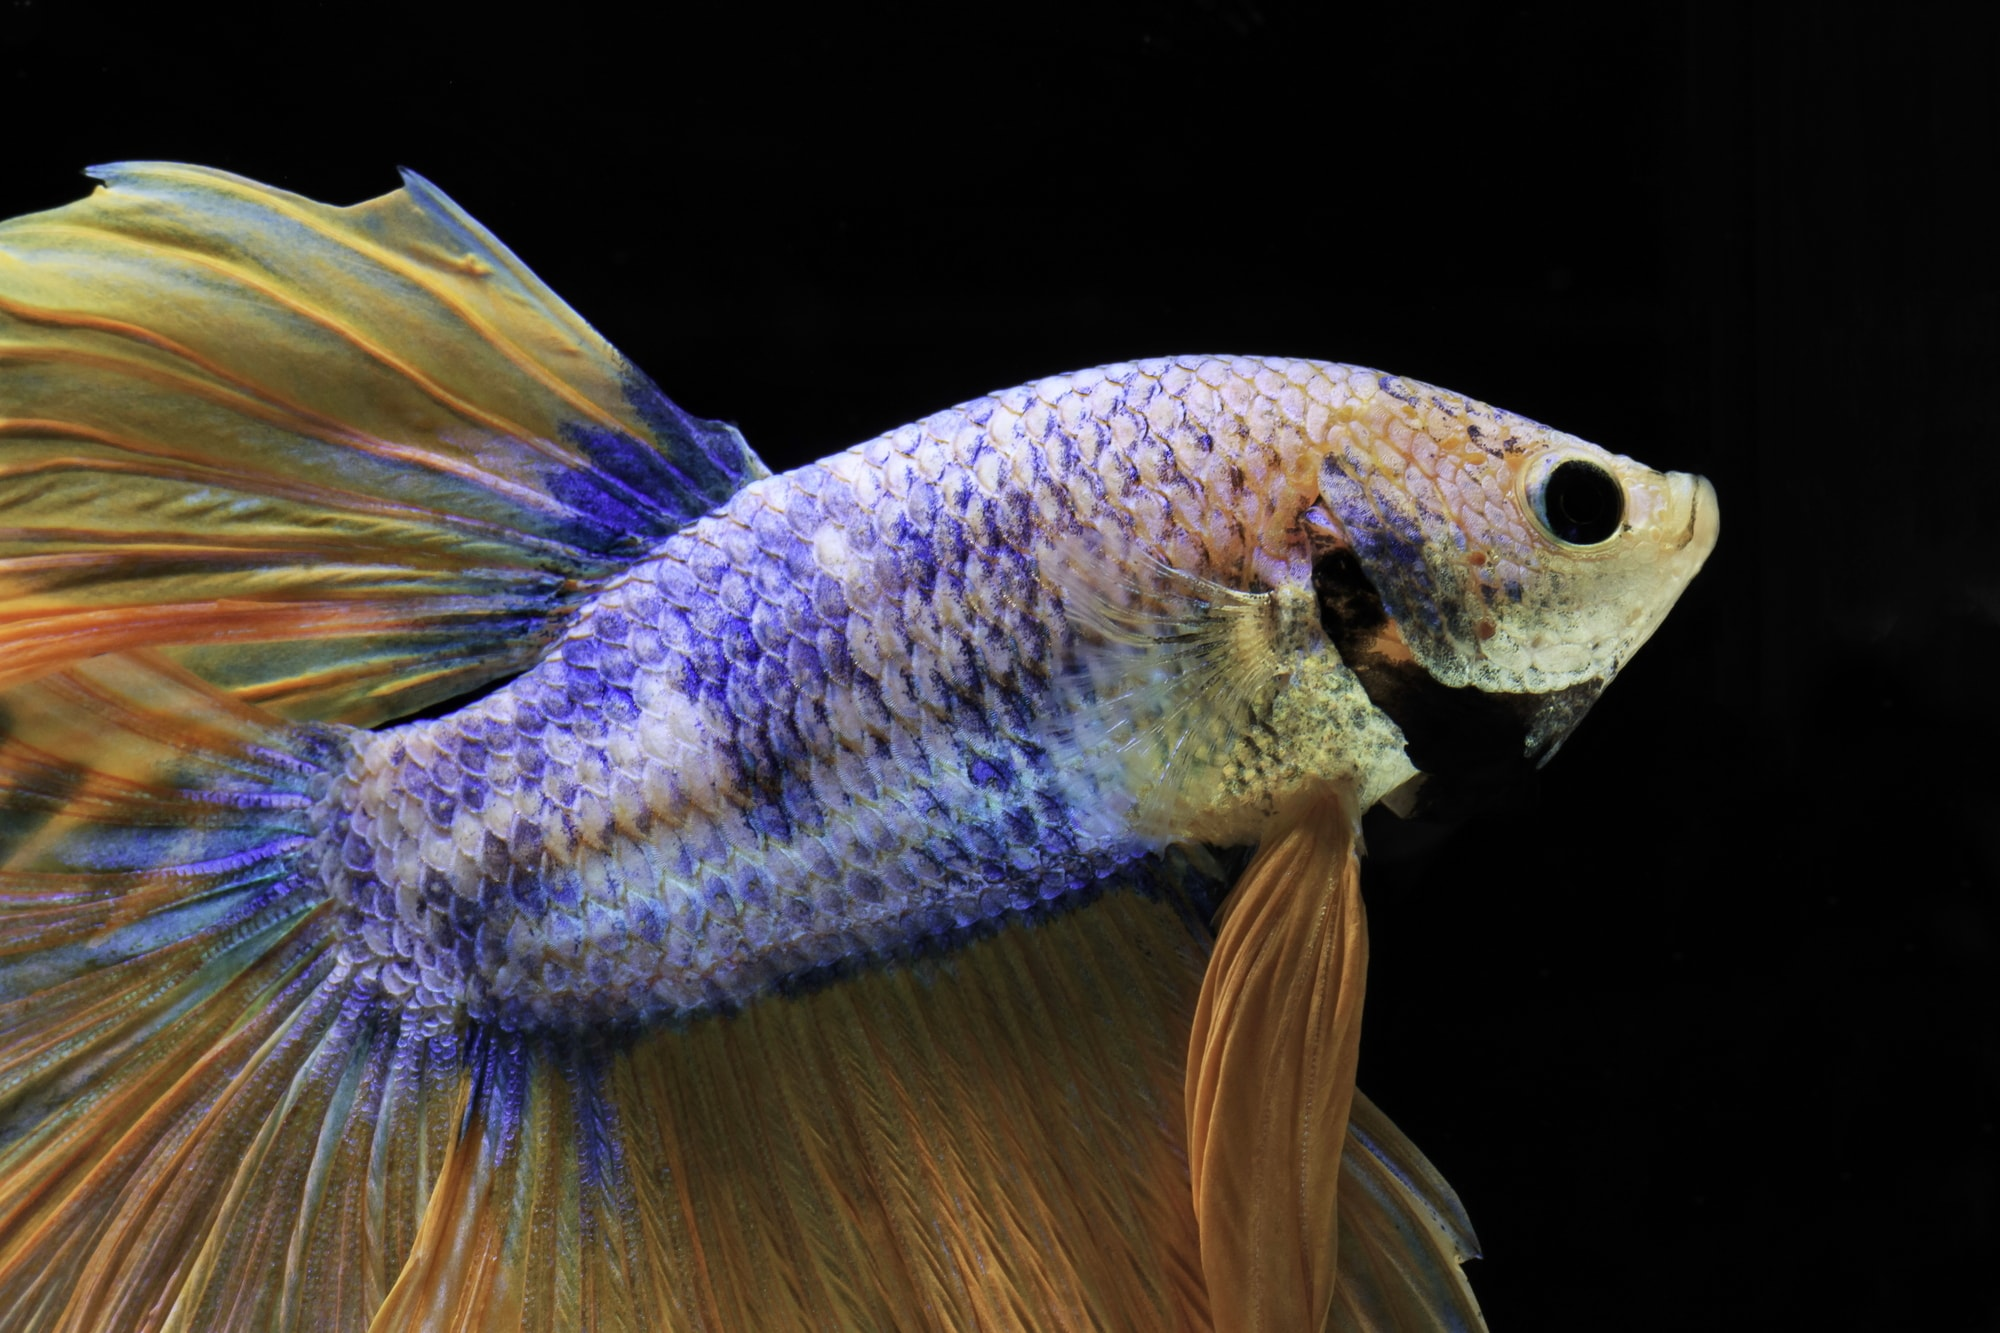 betta fish with gill flukes in black background